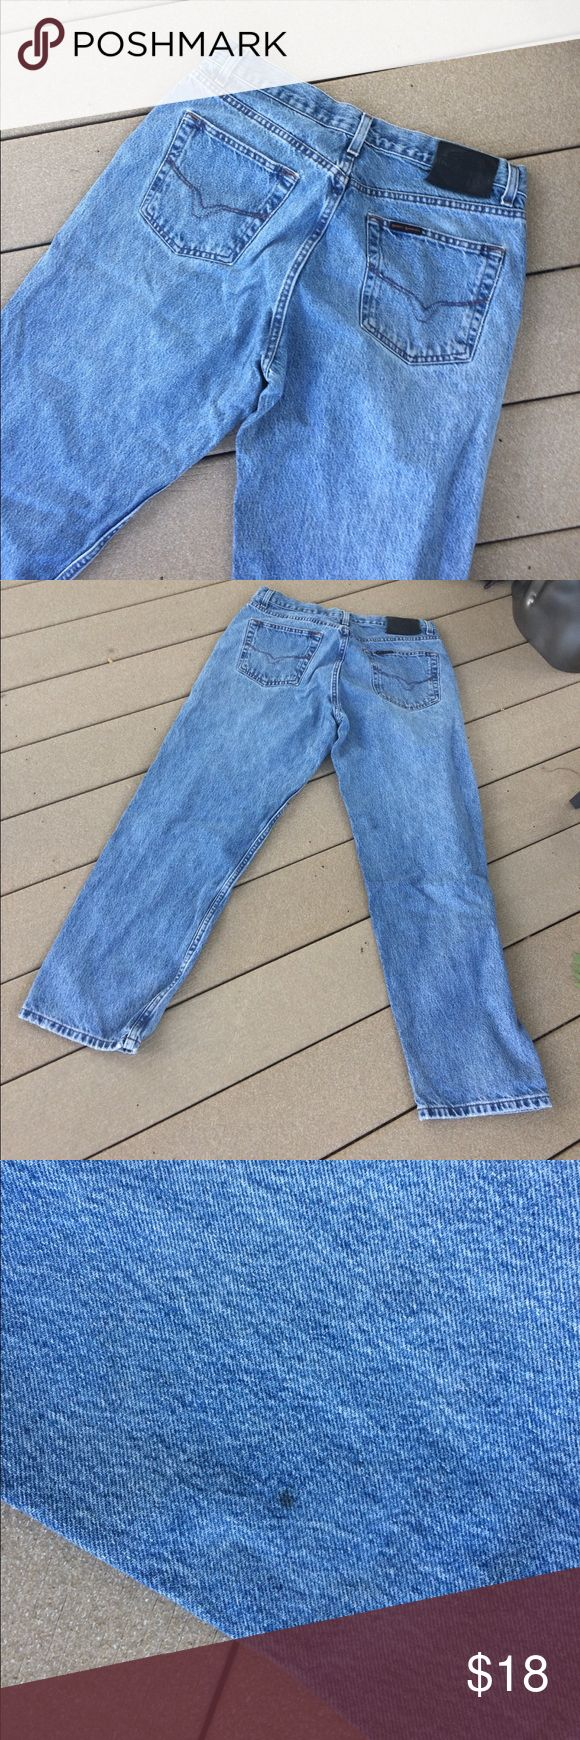 Harley Davidson jeans 34/30 Loved some small marks see pics Harley-Davidson Jeans